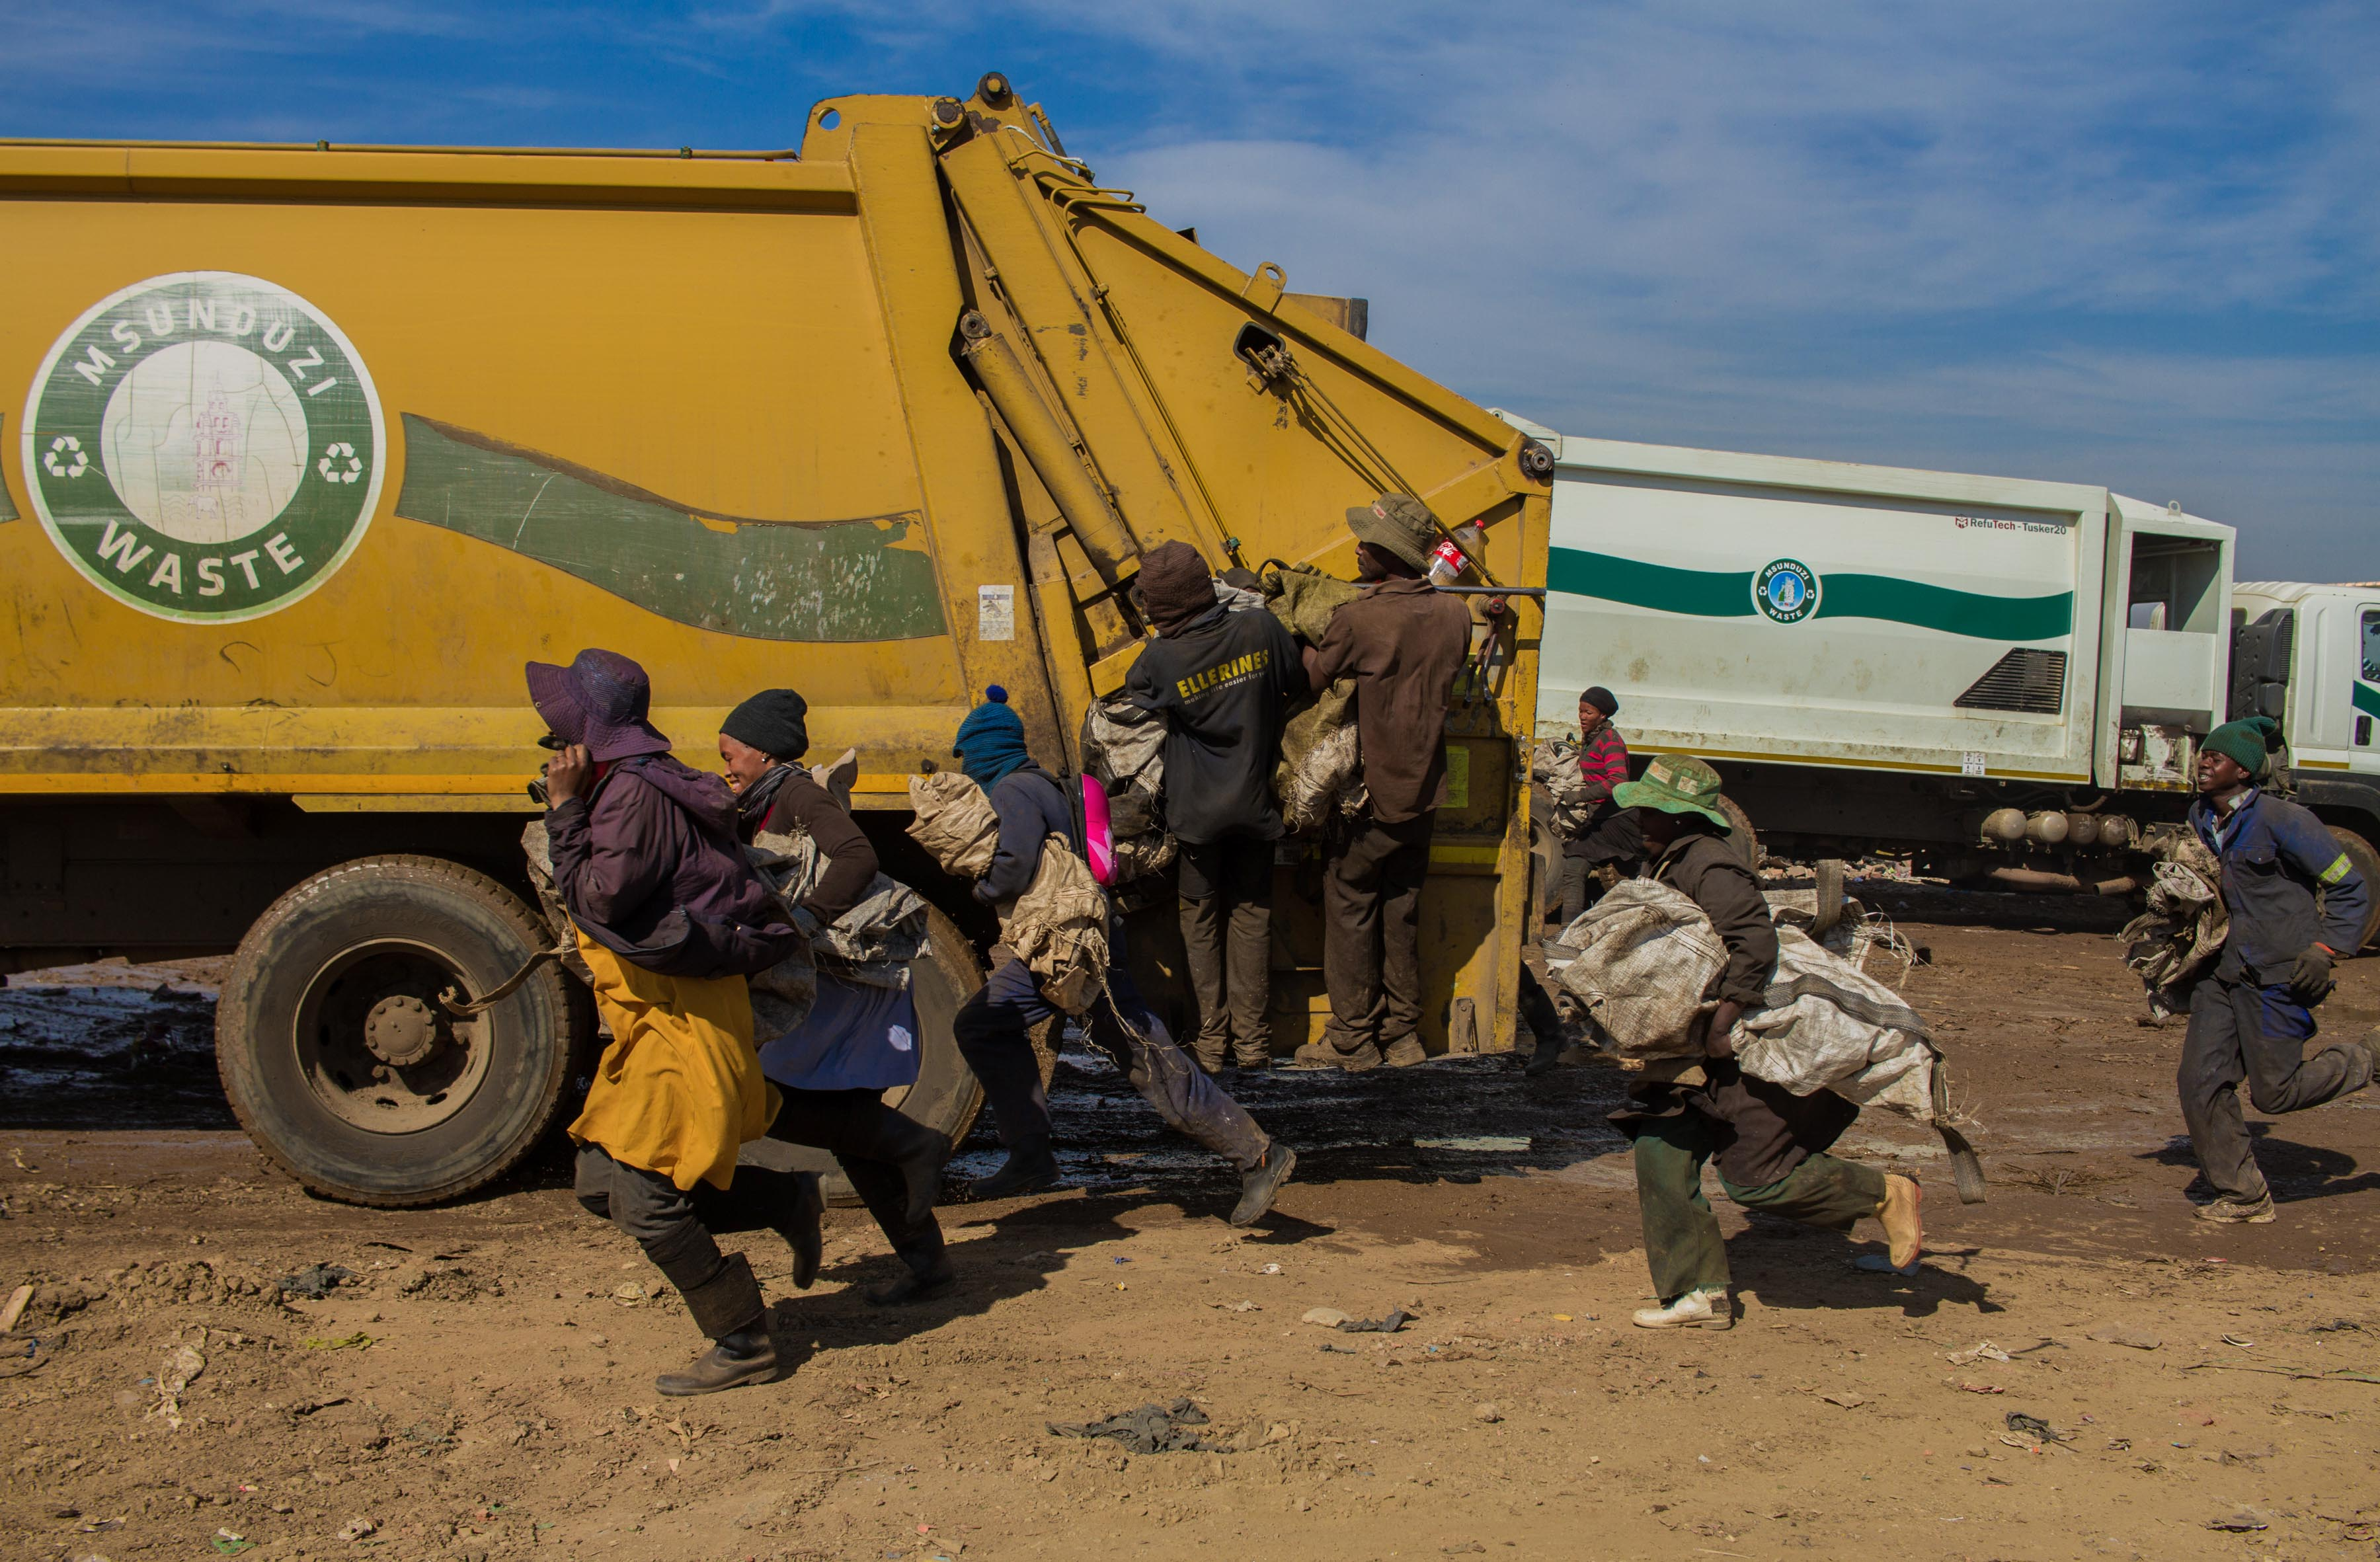 18 July 2019: Some waste pickers jump on to arriving compactor trucks while they are still moving in an attempt to get to the refuse first. It's dangerous work and several pickers have died on site.